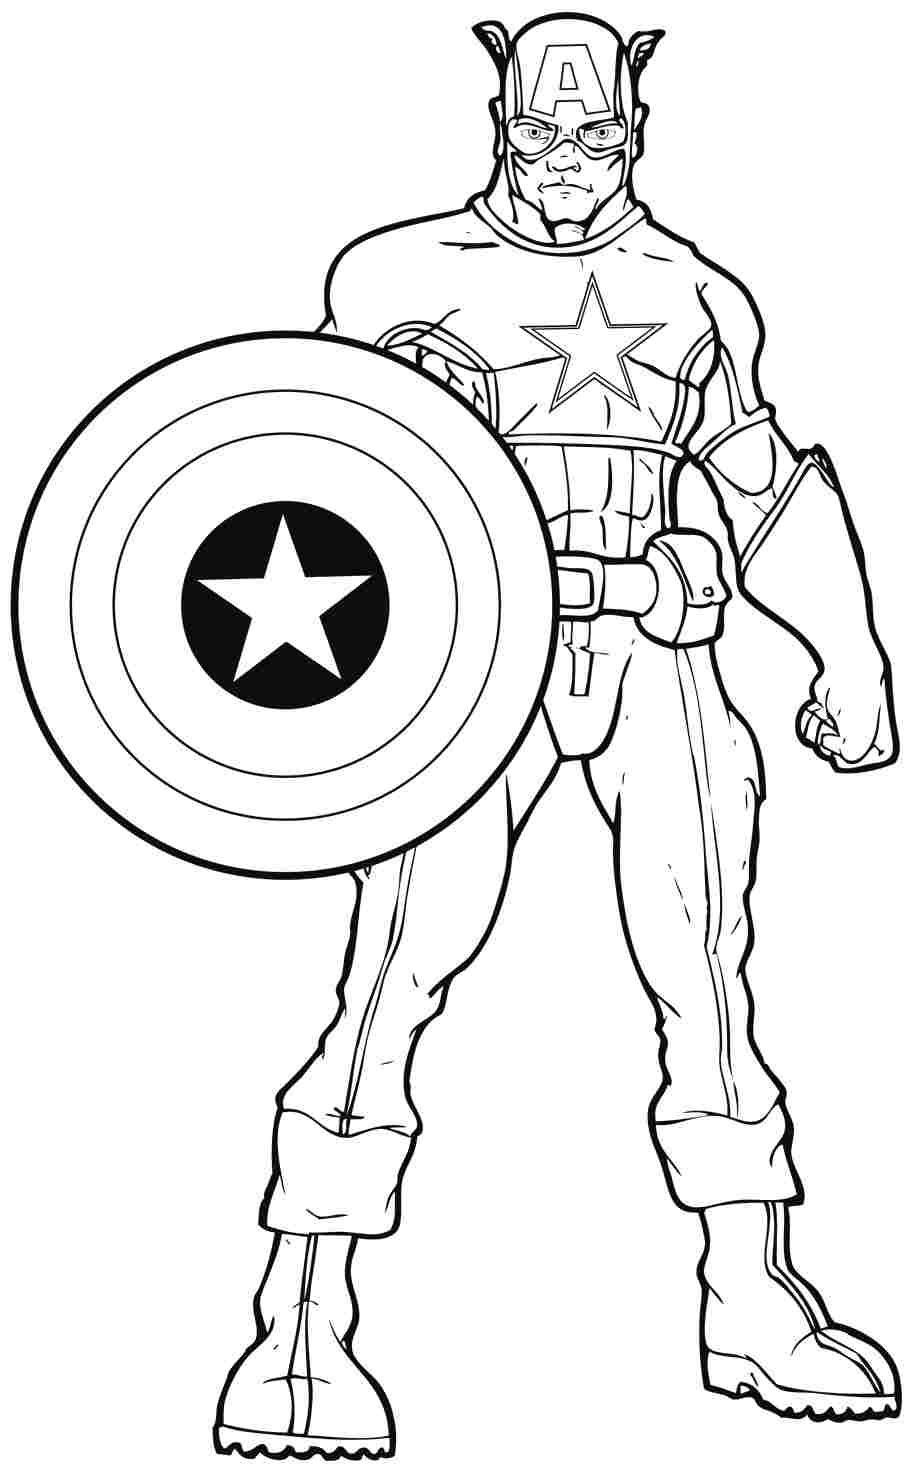 Best Of Captain America Coloring Pages Pdf Printable Free Coloring Sheets Superhero Coloring Avengers Coloring Pages Captain America Coloring Pages